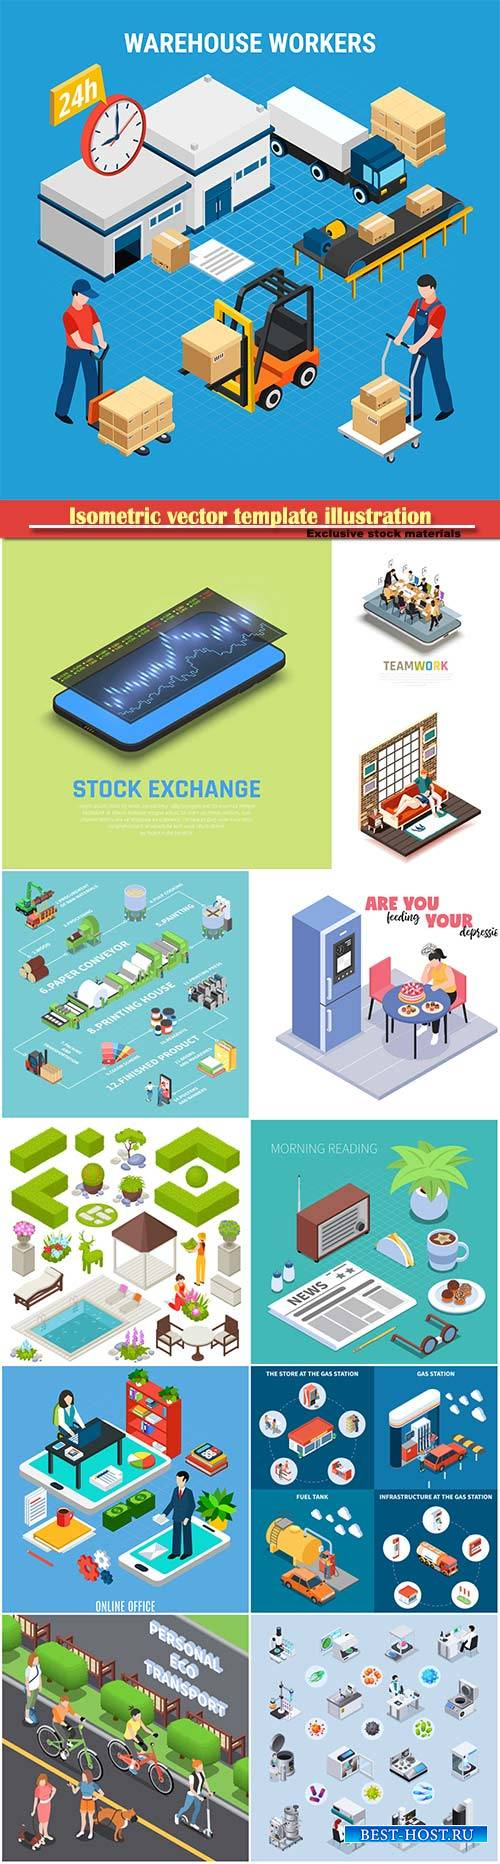 Isometric vector template illustration # 4